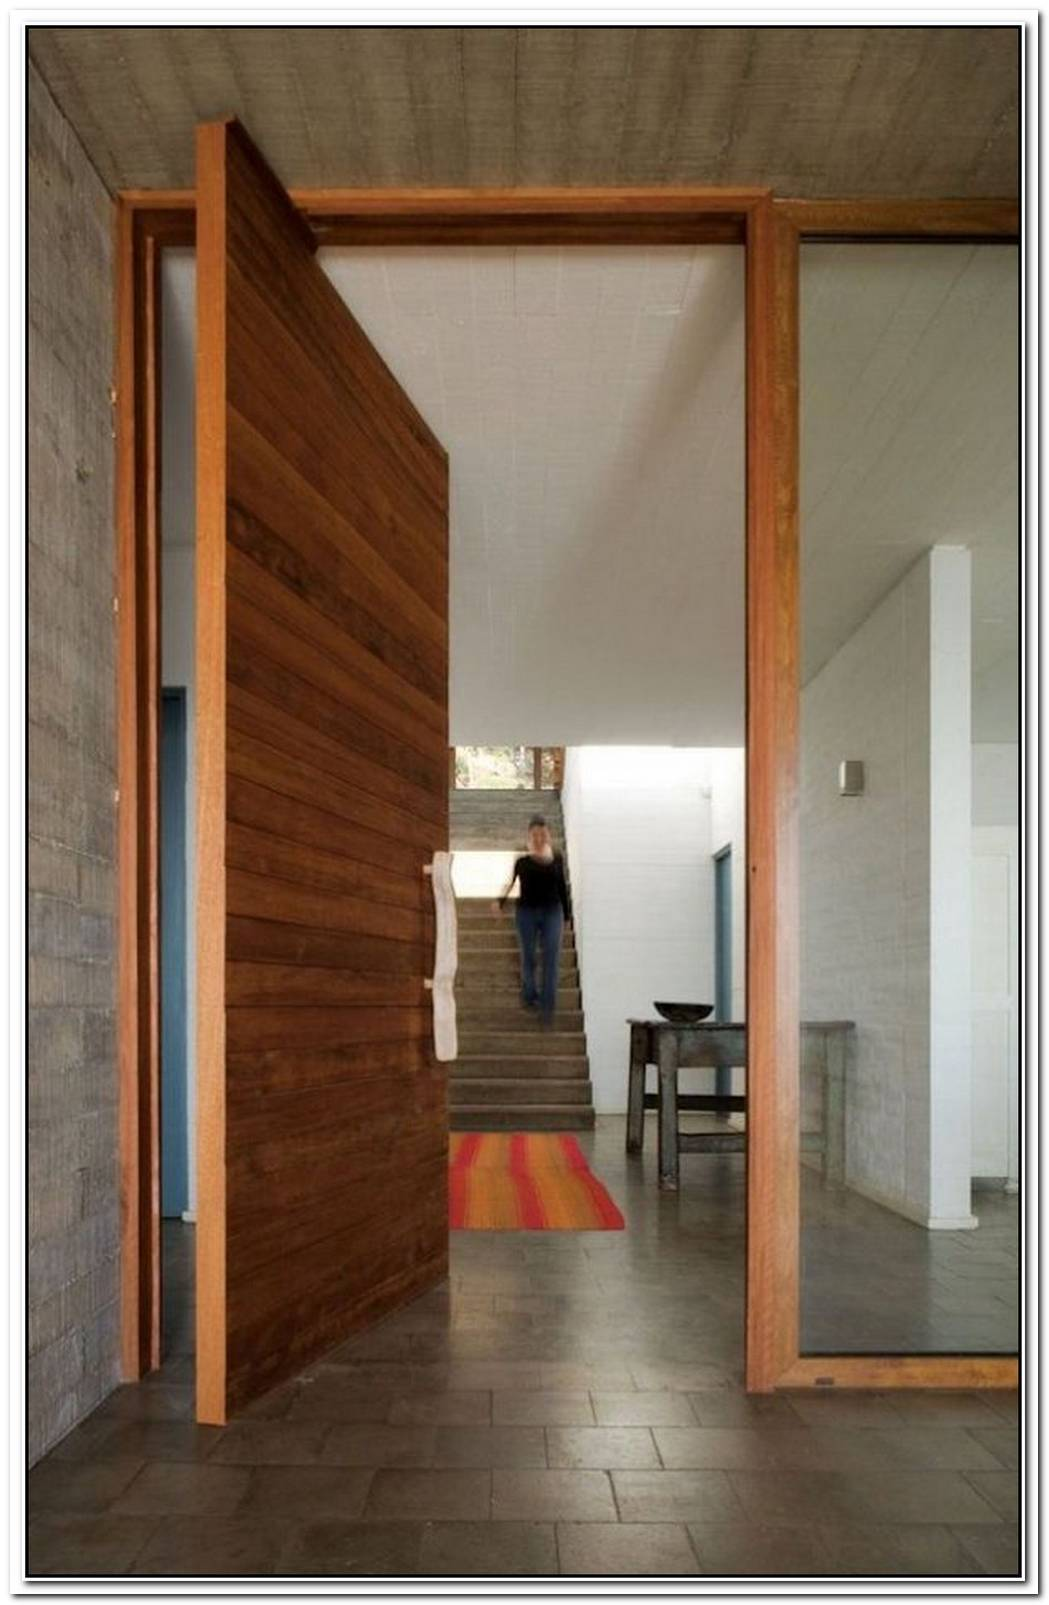 Minimalist Home Design Blends With The Beautiful Scenery %E2%80%93 El Pangue House